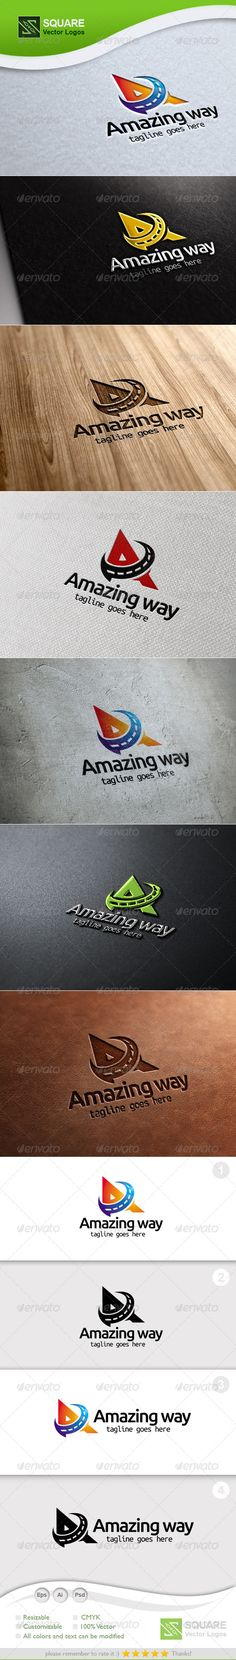 A Way Vector - Logo Design Template Vector #logotype Download it here: http://graphicriver.net/item/a-way-vector-logo-template/5414471?s_rank=1293?ref=nexion